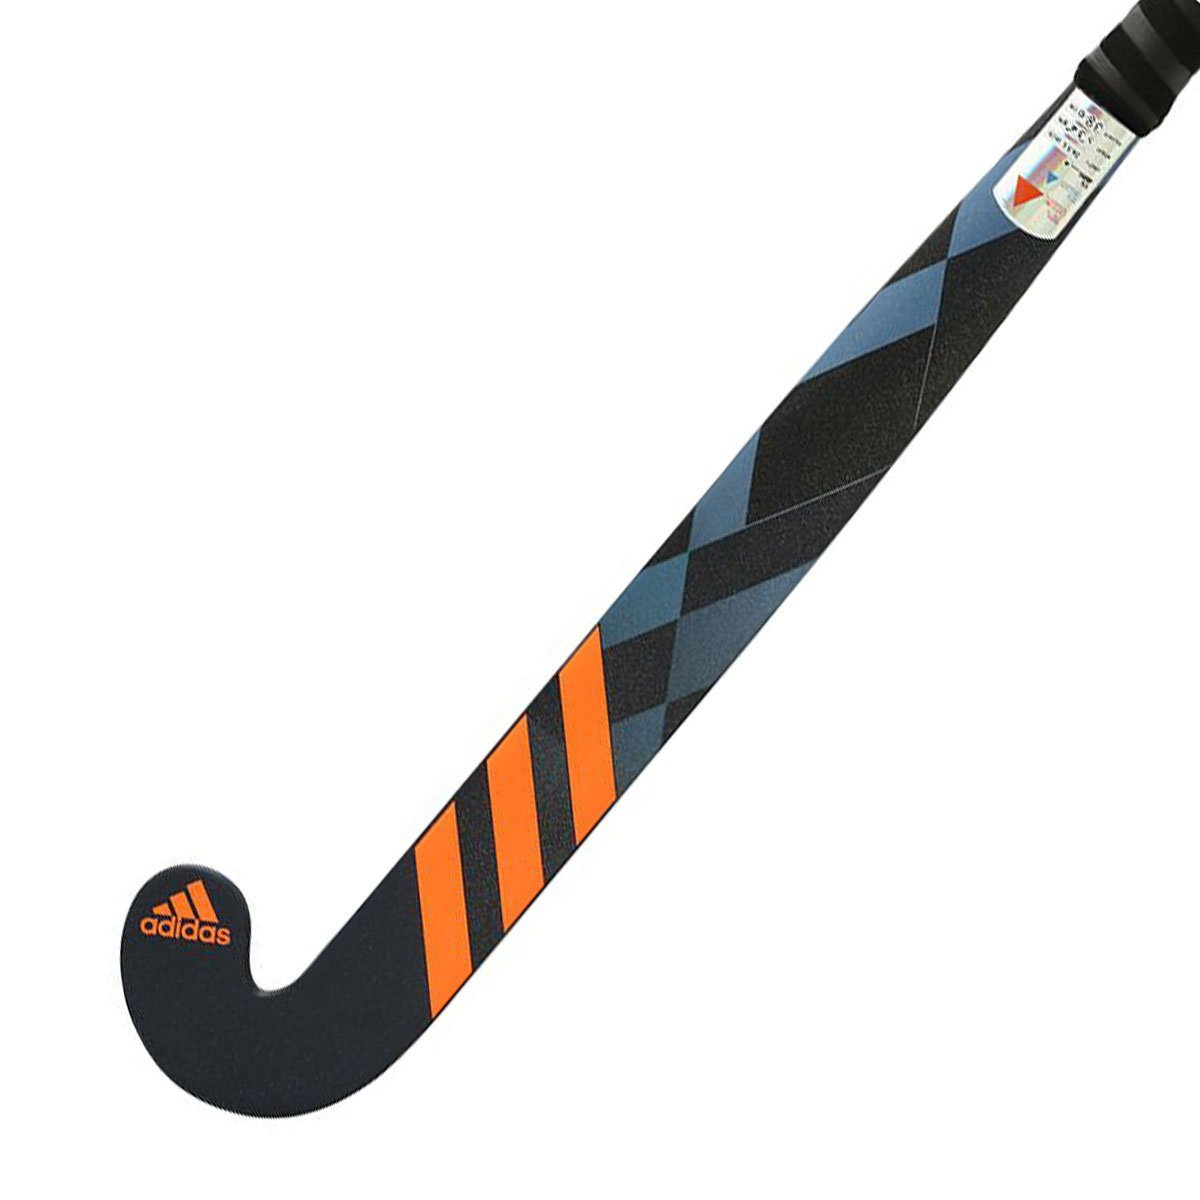 Adidas V Compo 1 (Super Light) - Just Hockey